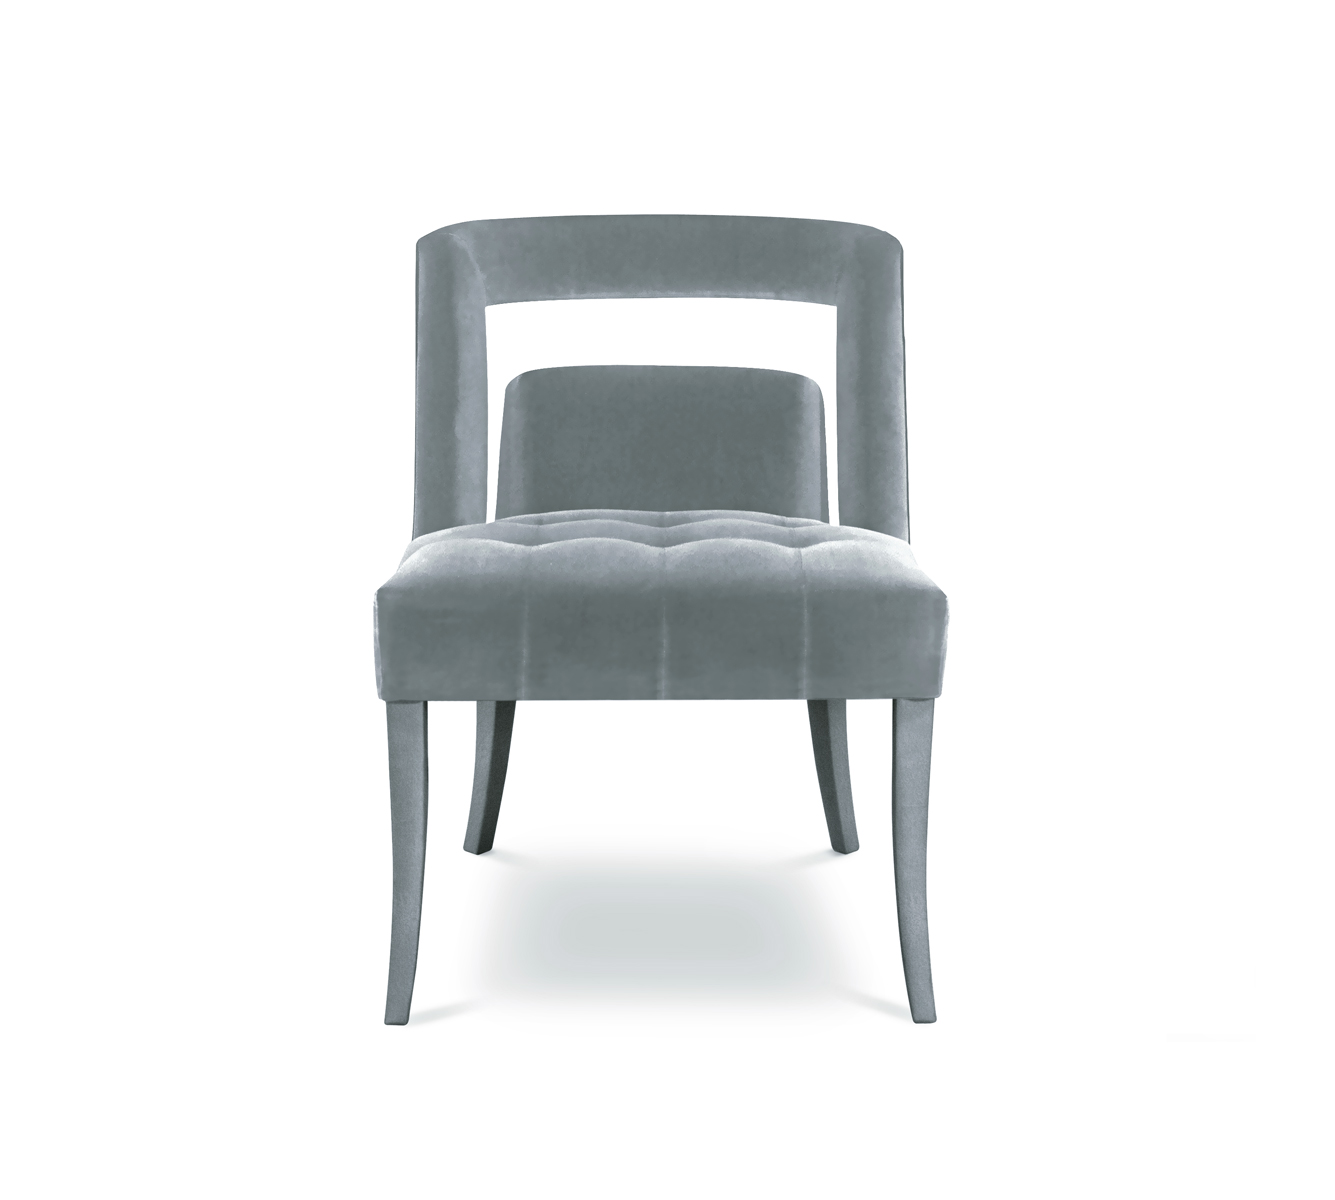 dining chairs contemporary. Naj Dining Chair By Brabbu Chairs Contemporary